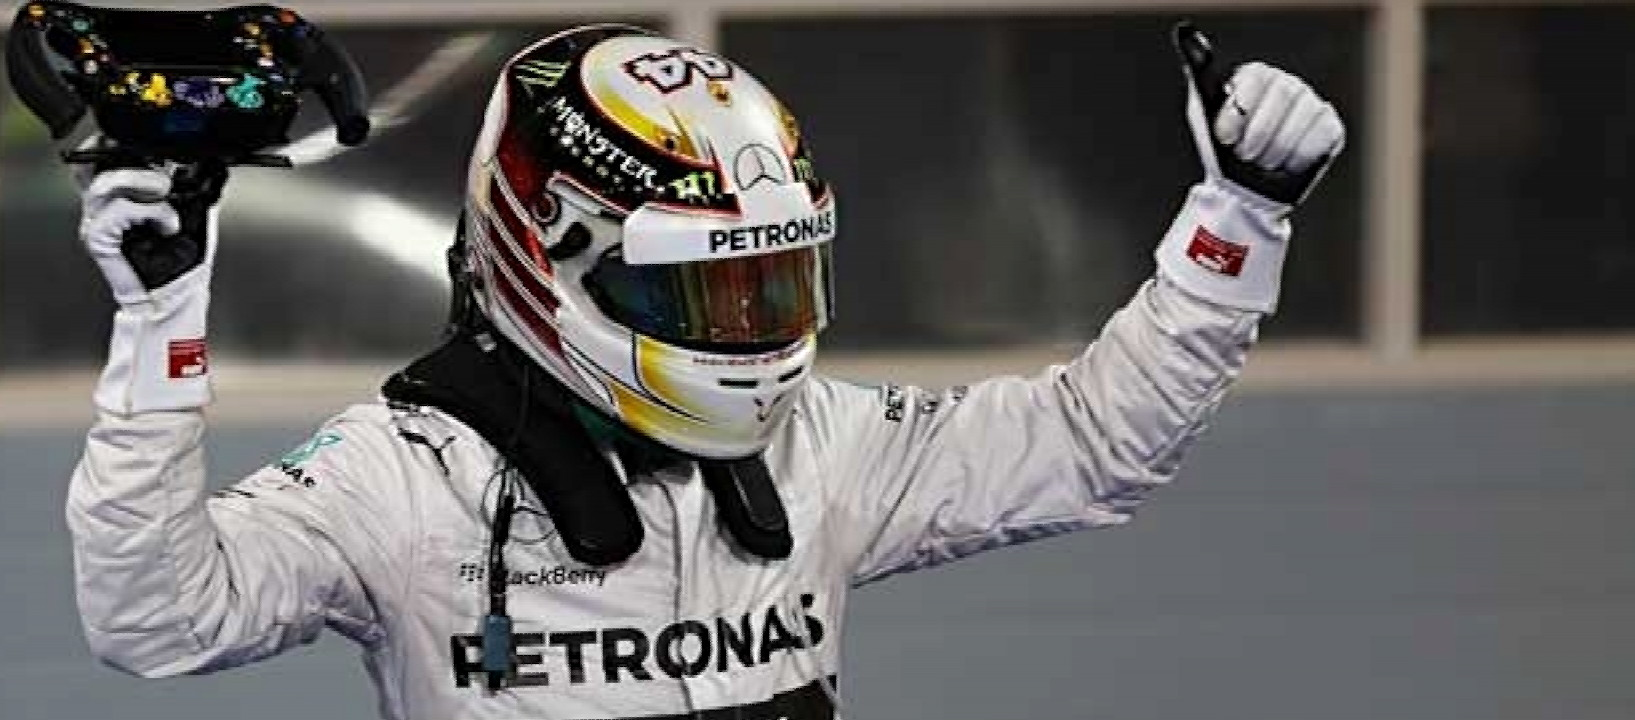 lewishamilton_getty_060414-1680x720